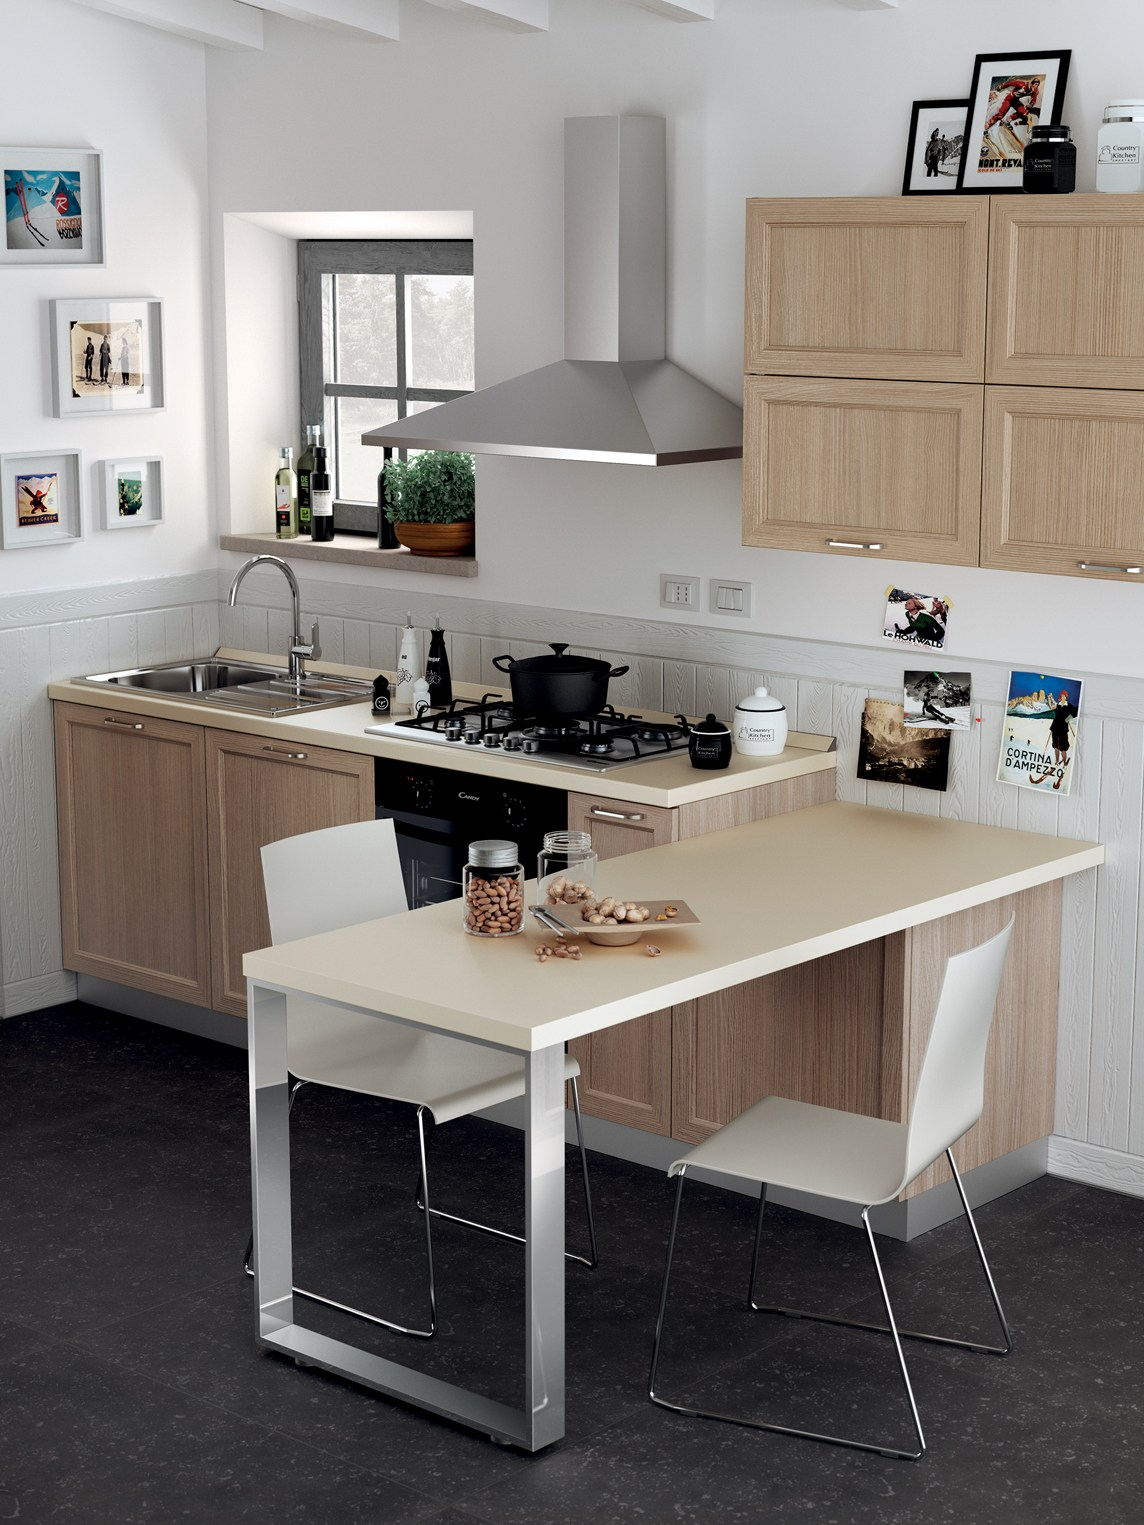 Cucina Scavolini Modello Sax. Sax Plenty Of Ideas To Make The Dream ...